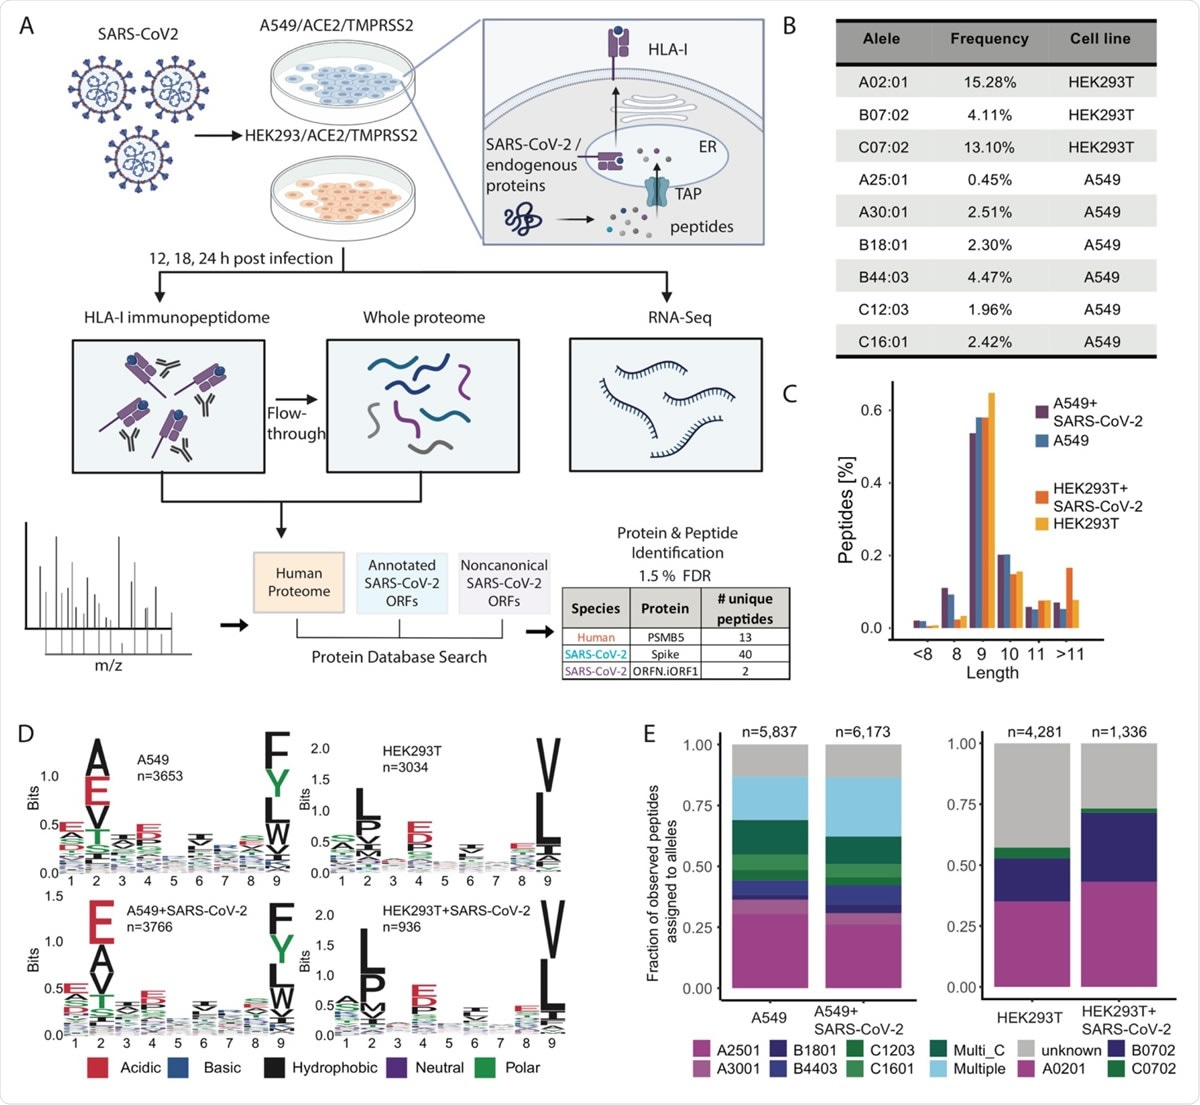 Experimental design and measurements of HLA-I immunopeptidome, whole proteome and RNA-seq in SARS-CoV-2 infected cells.